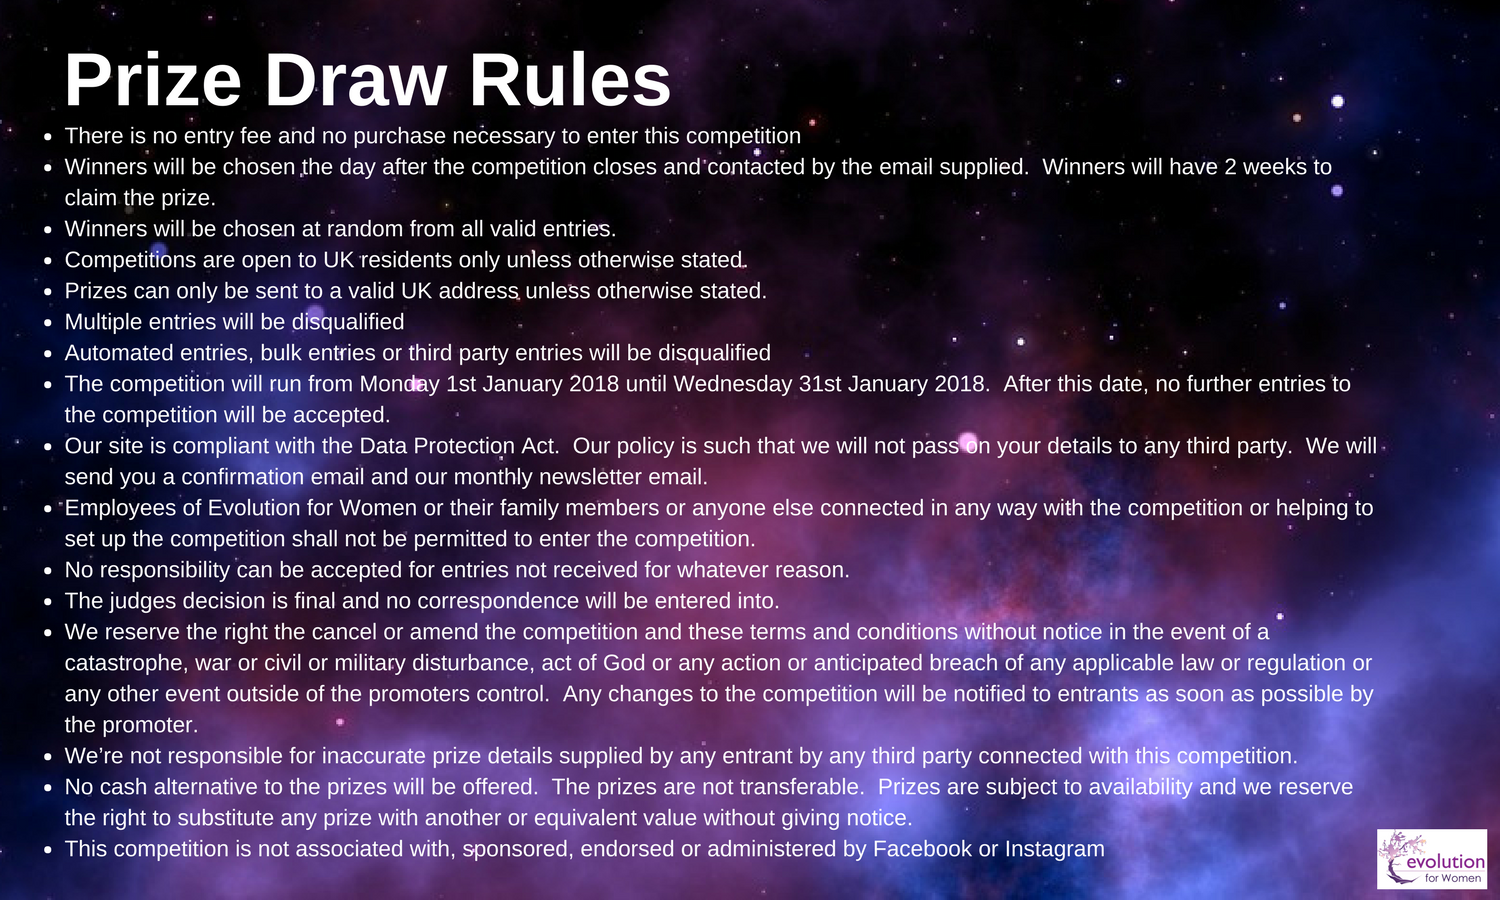 Prize Draw Rules